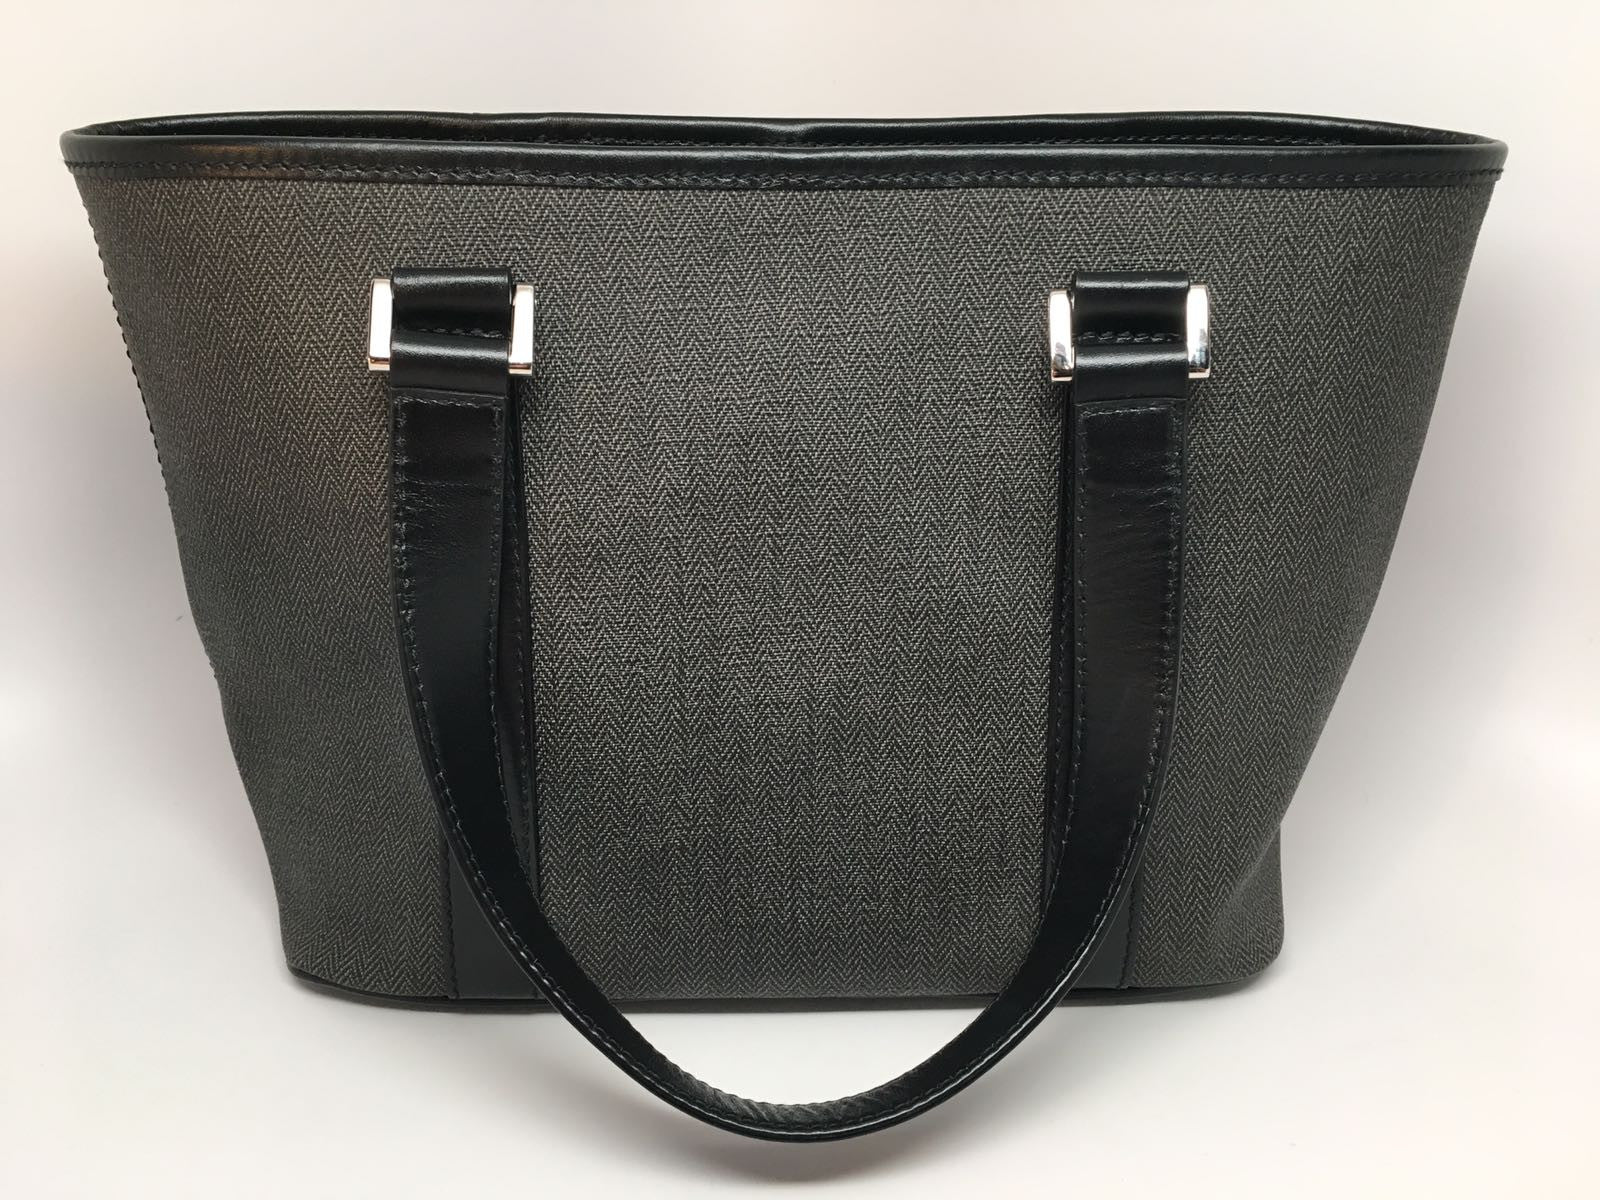 BVLGARI GRAY/BLACK HERITAGE CANVAS WEEKEND TOTE